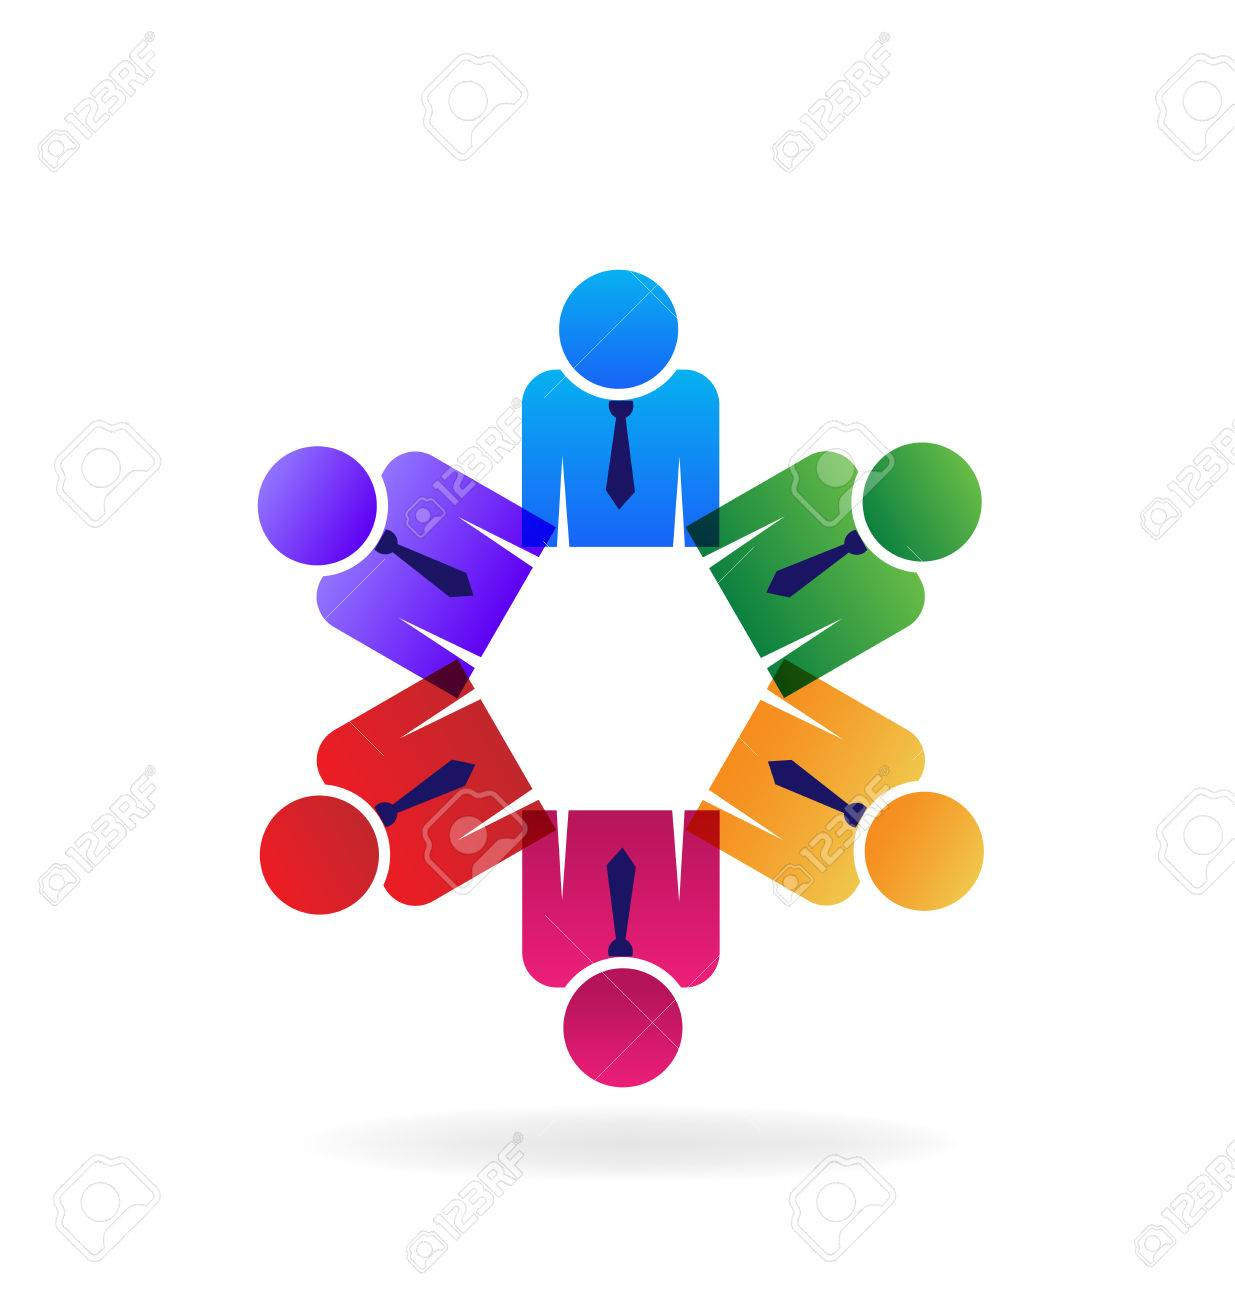 teamwork executives business people holding hands logo vector rh 123rf com holding hands logo design Logos of Different Colored Hands Holding